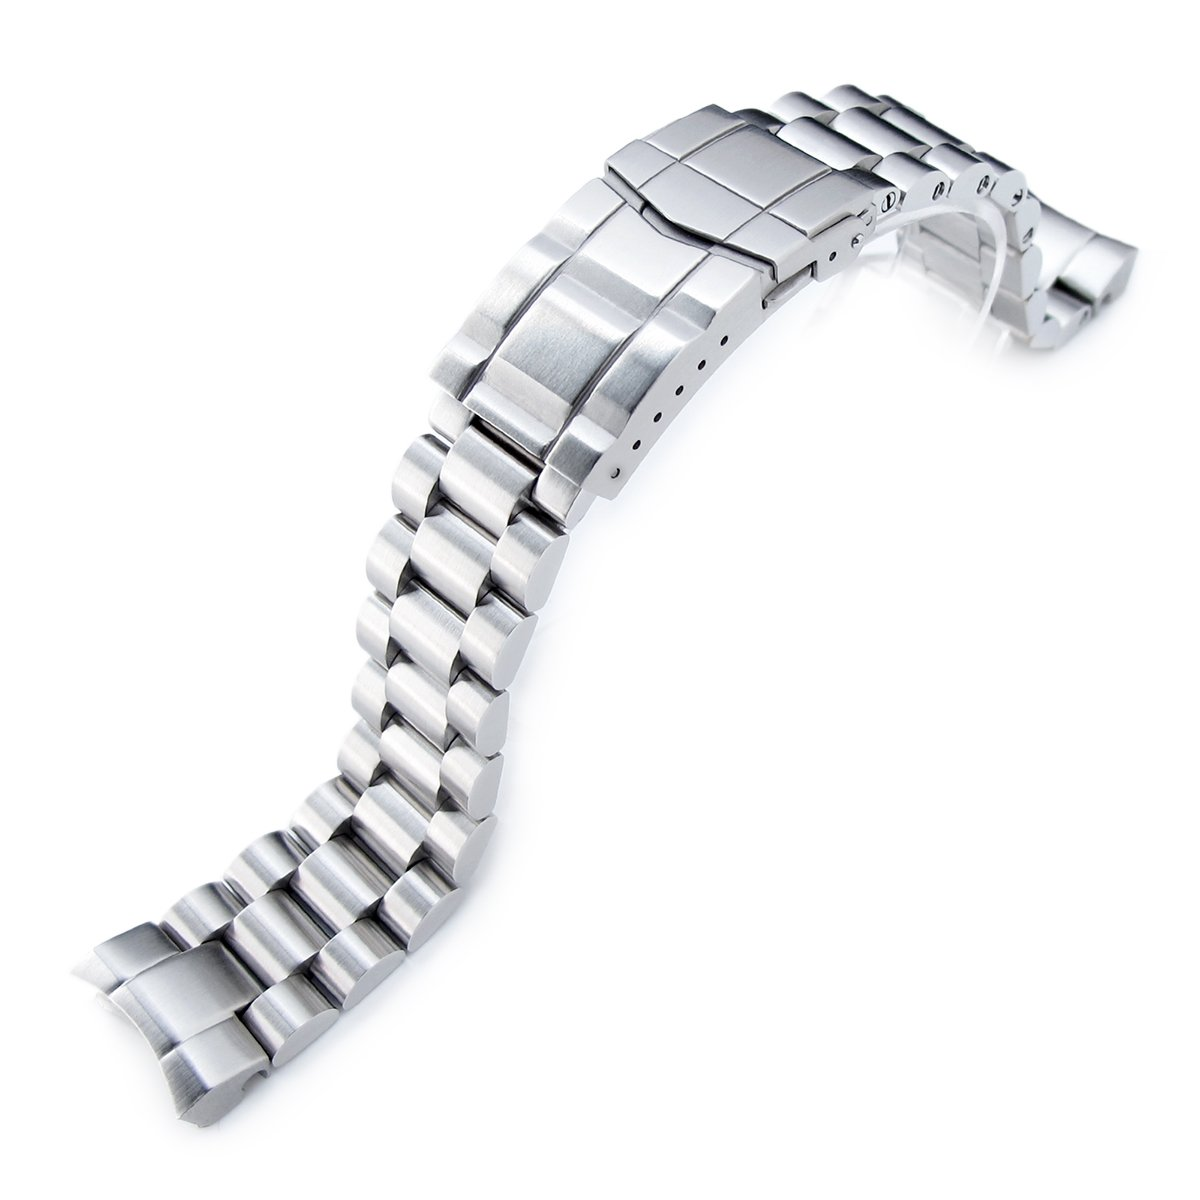 20mm Endmill Watch Band for SEIKO Sumo SBDC001 SBDC003 SBDC031 SBDC033 Submariner Clasp